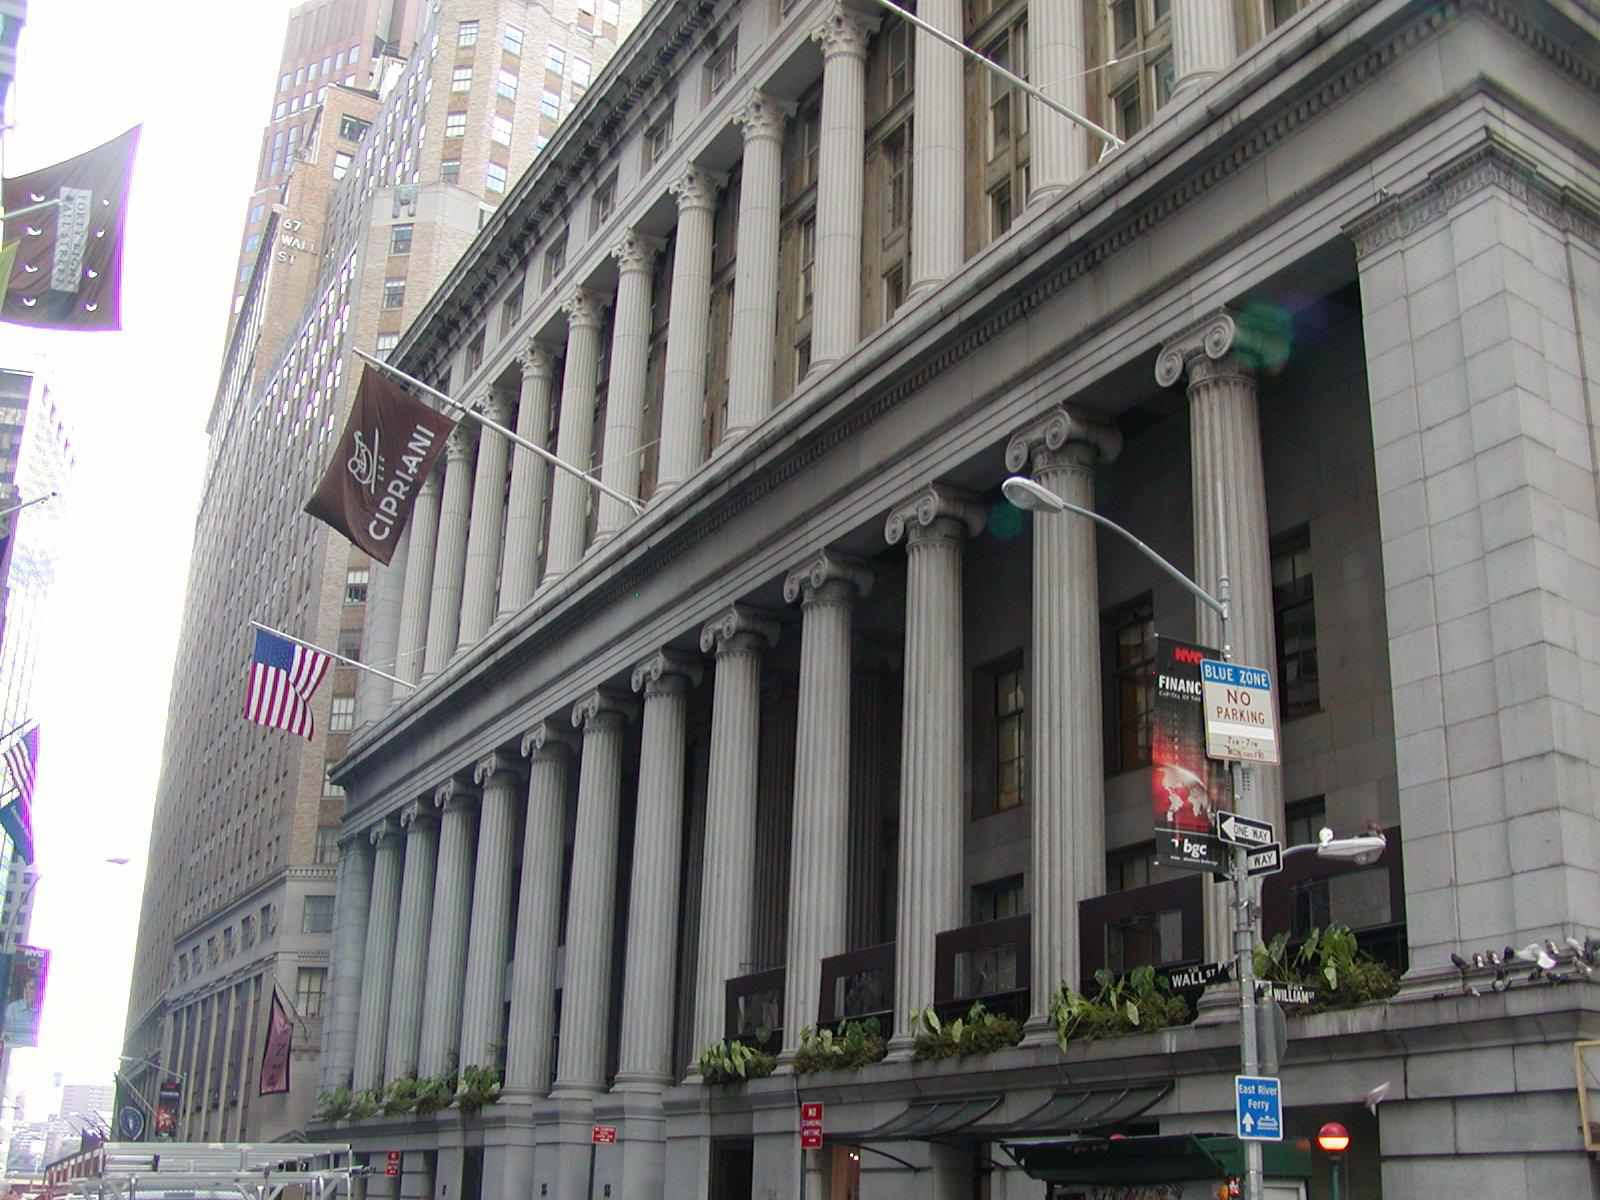 Photo of the 55 Wall Street building with its rows of columns.